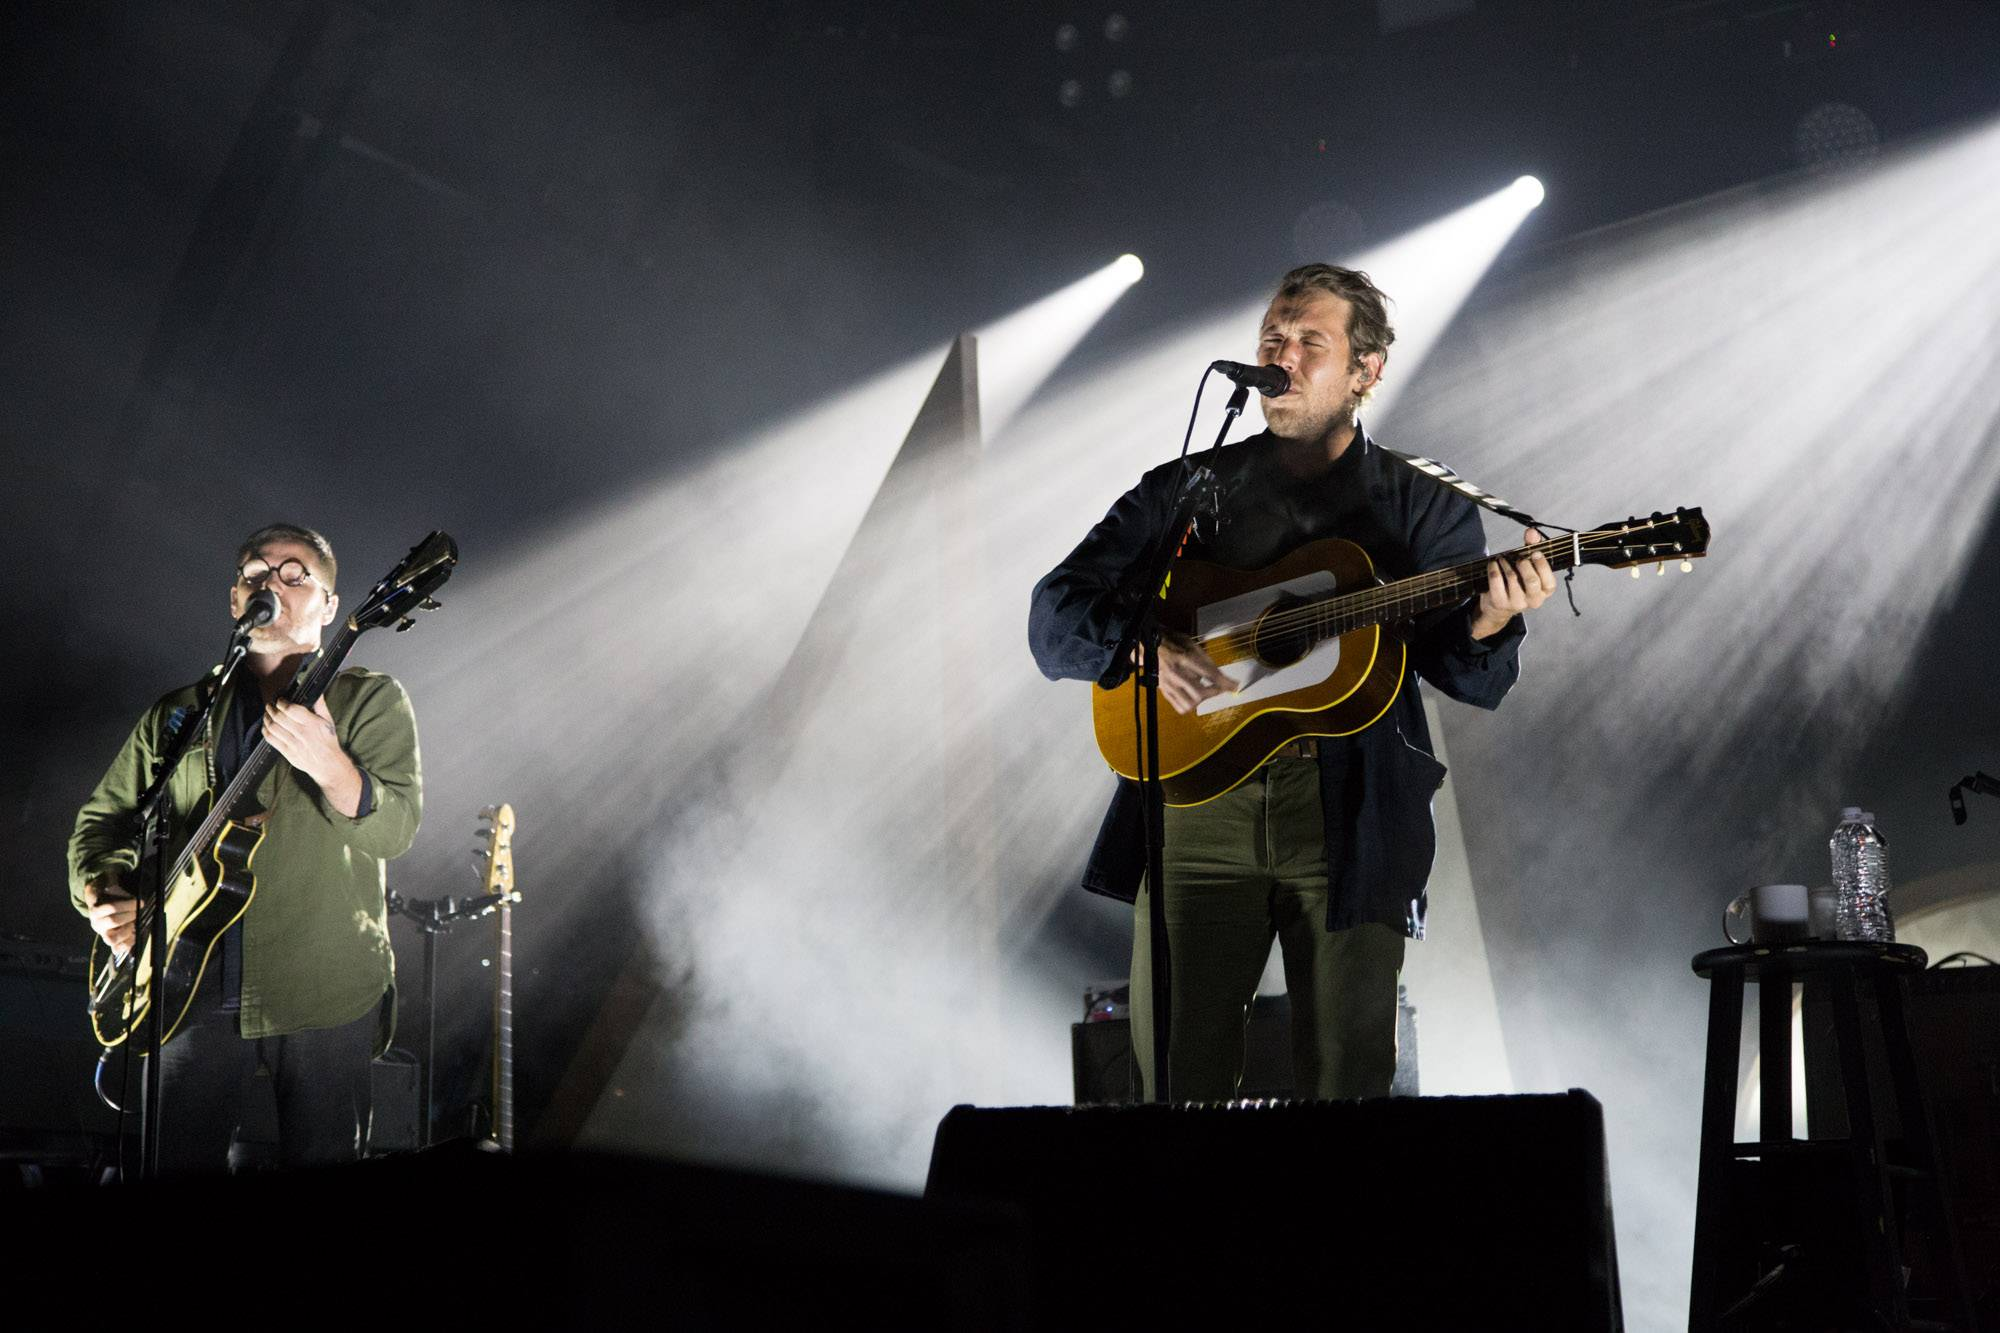 Fleet Foxes at the Malkin Bowl, Vancouver, Sept 13 2017. Kirk Chantraine photo.